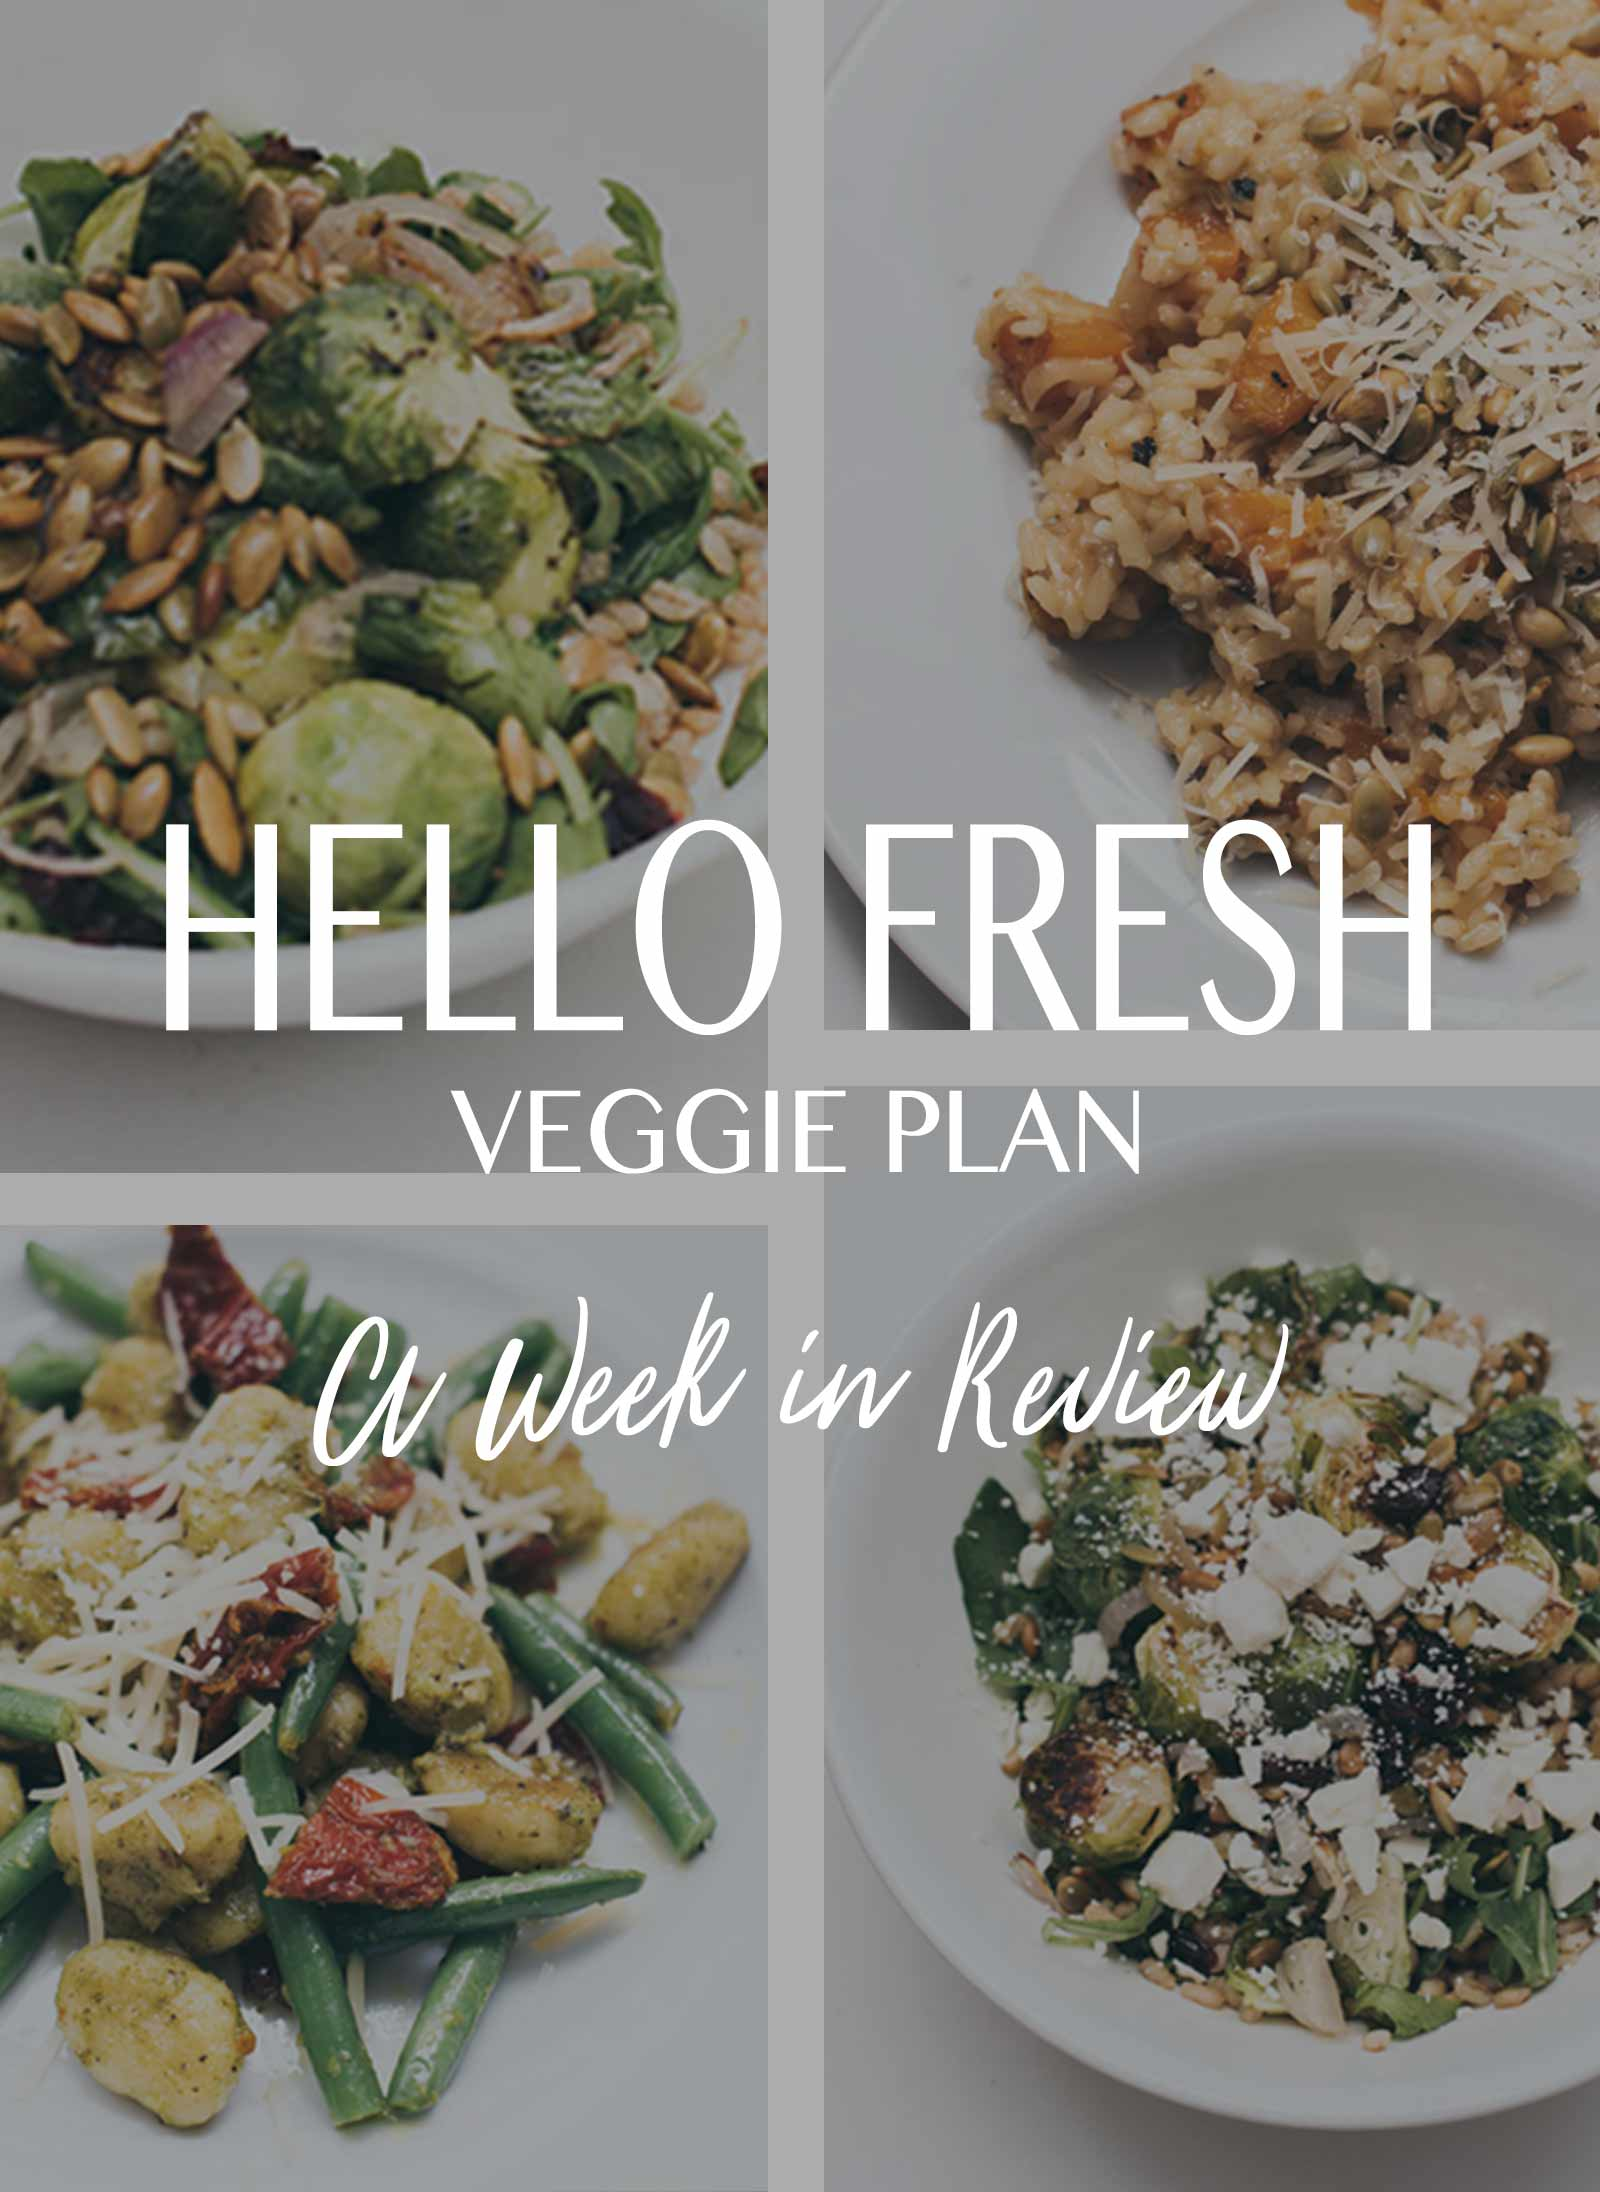 Cheap  Meal Kit Delivery Service Hellofresh Sell